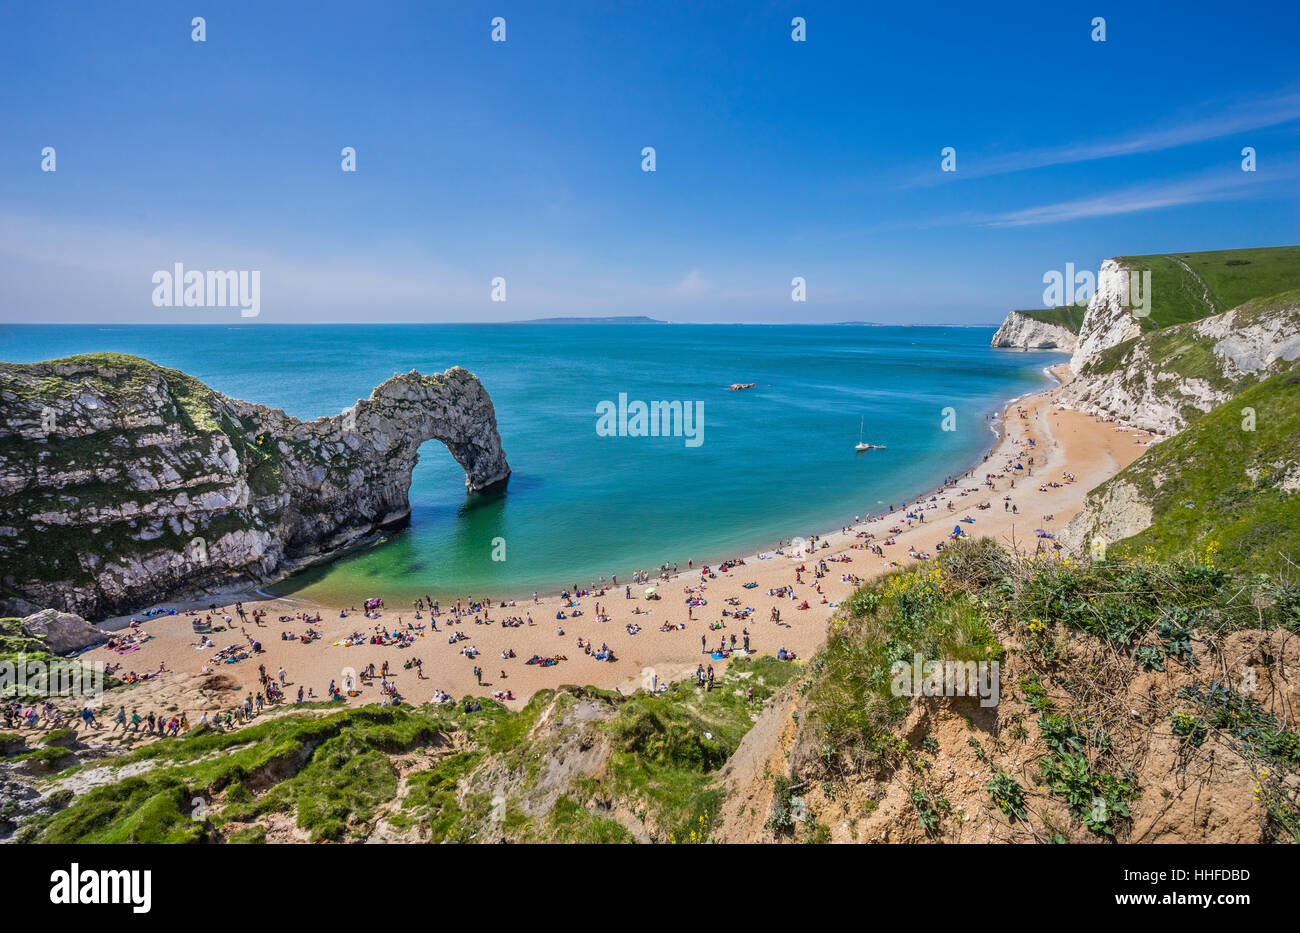 Great Britain, South West England, Dorset, Jurassic Coast, the natural limestone arch of Durdle Door - Stock Image